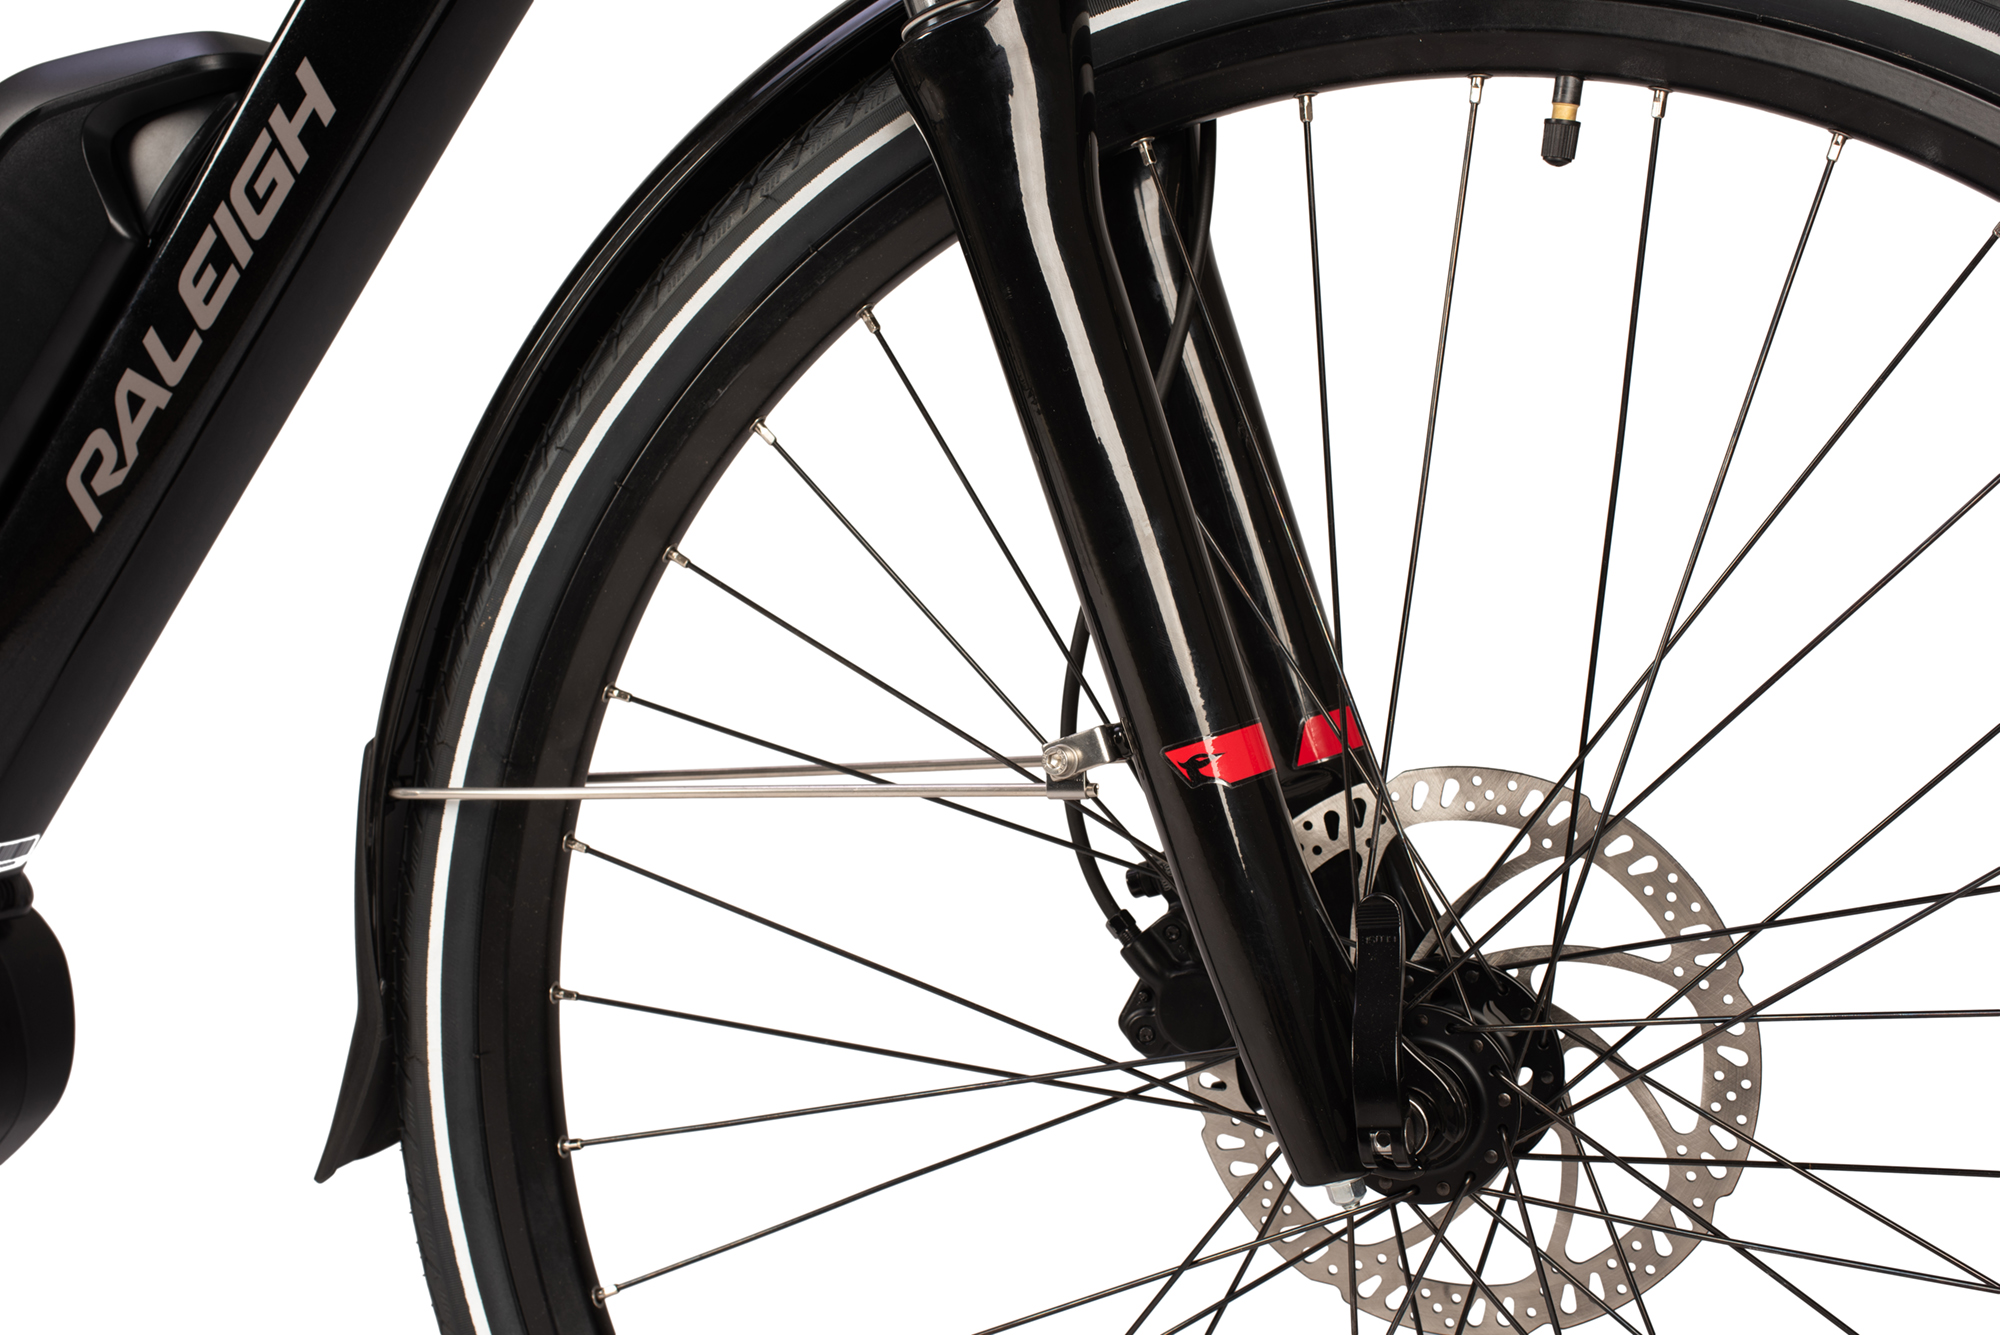 Disc brakes on the Raleigh Motus Grand Tour electric bike